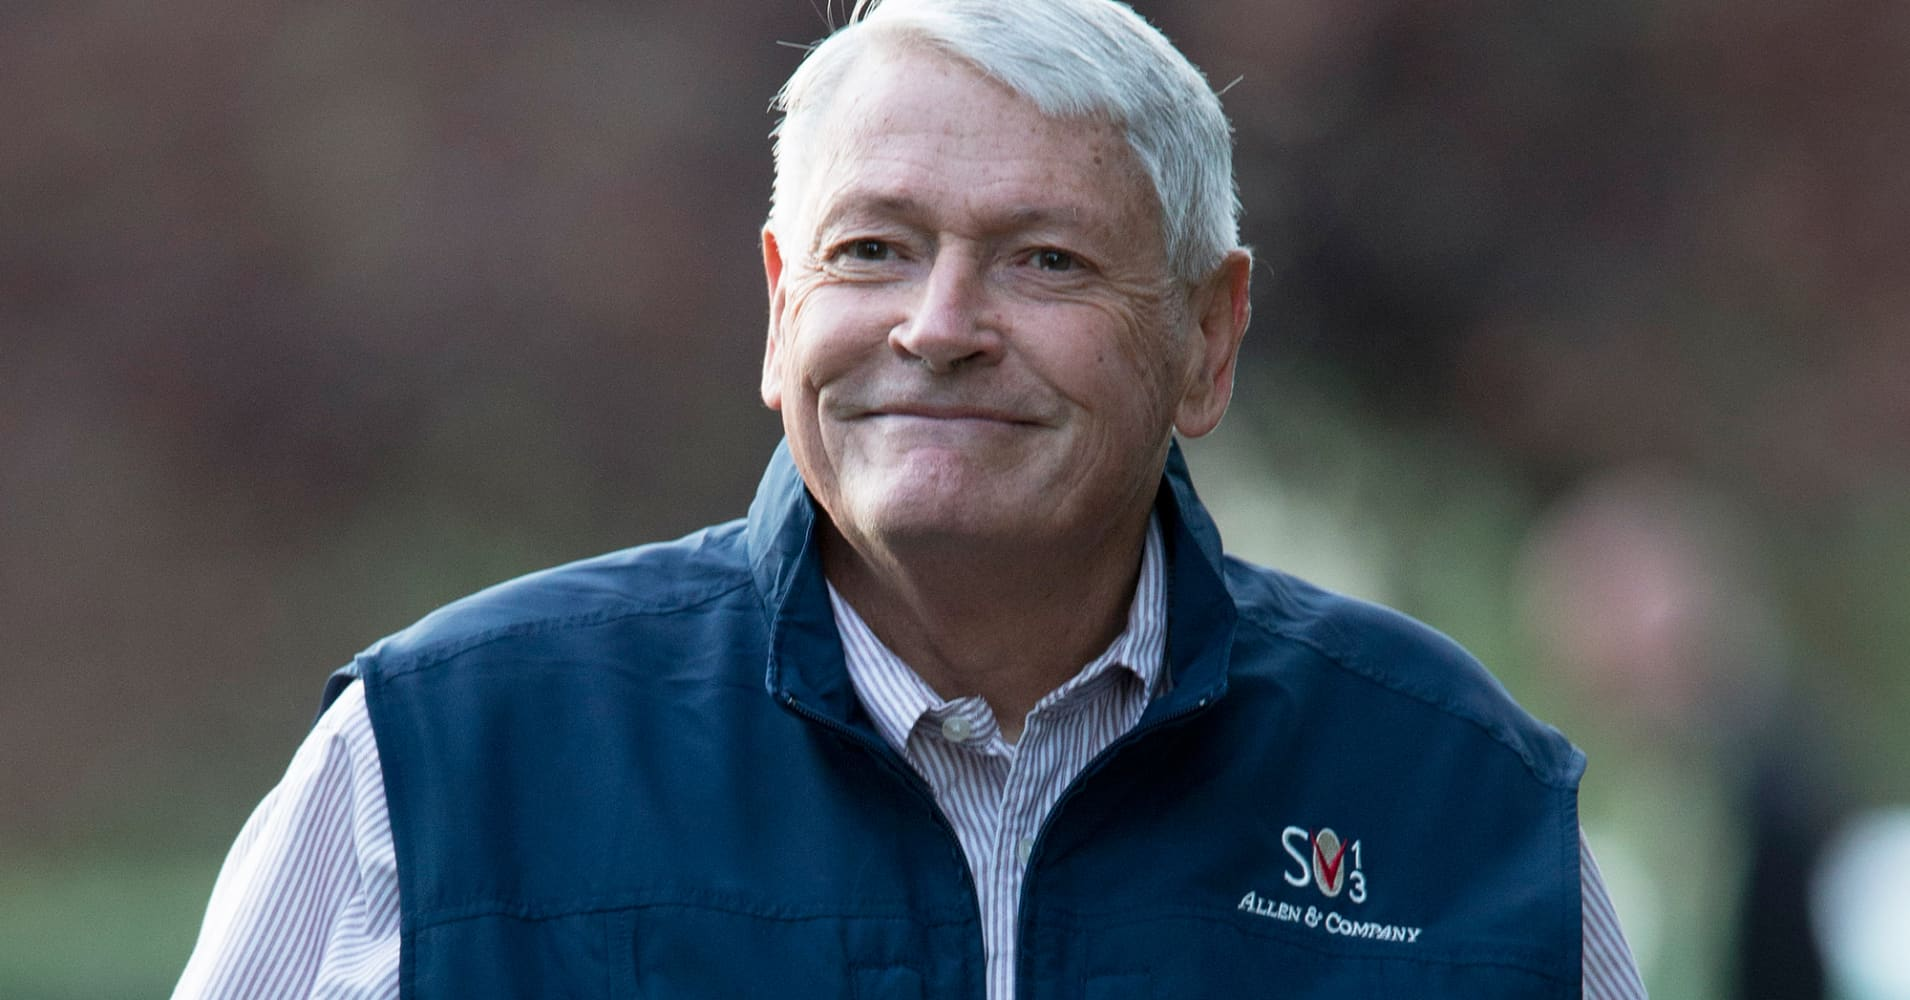 John Malone Scale very important in media space full interview